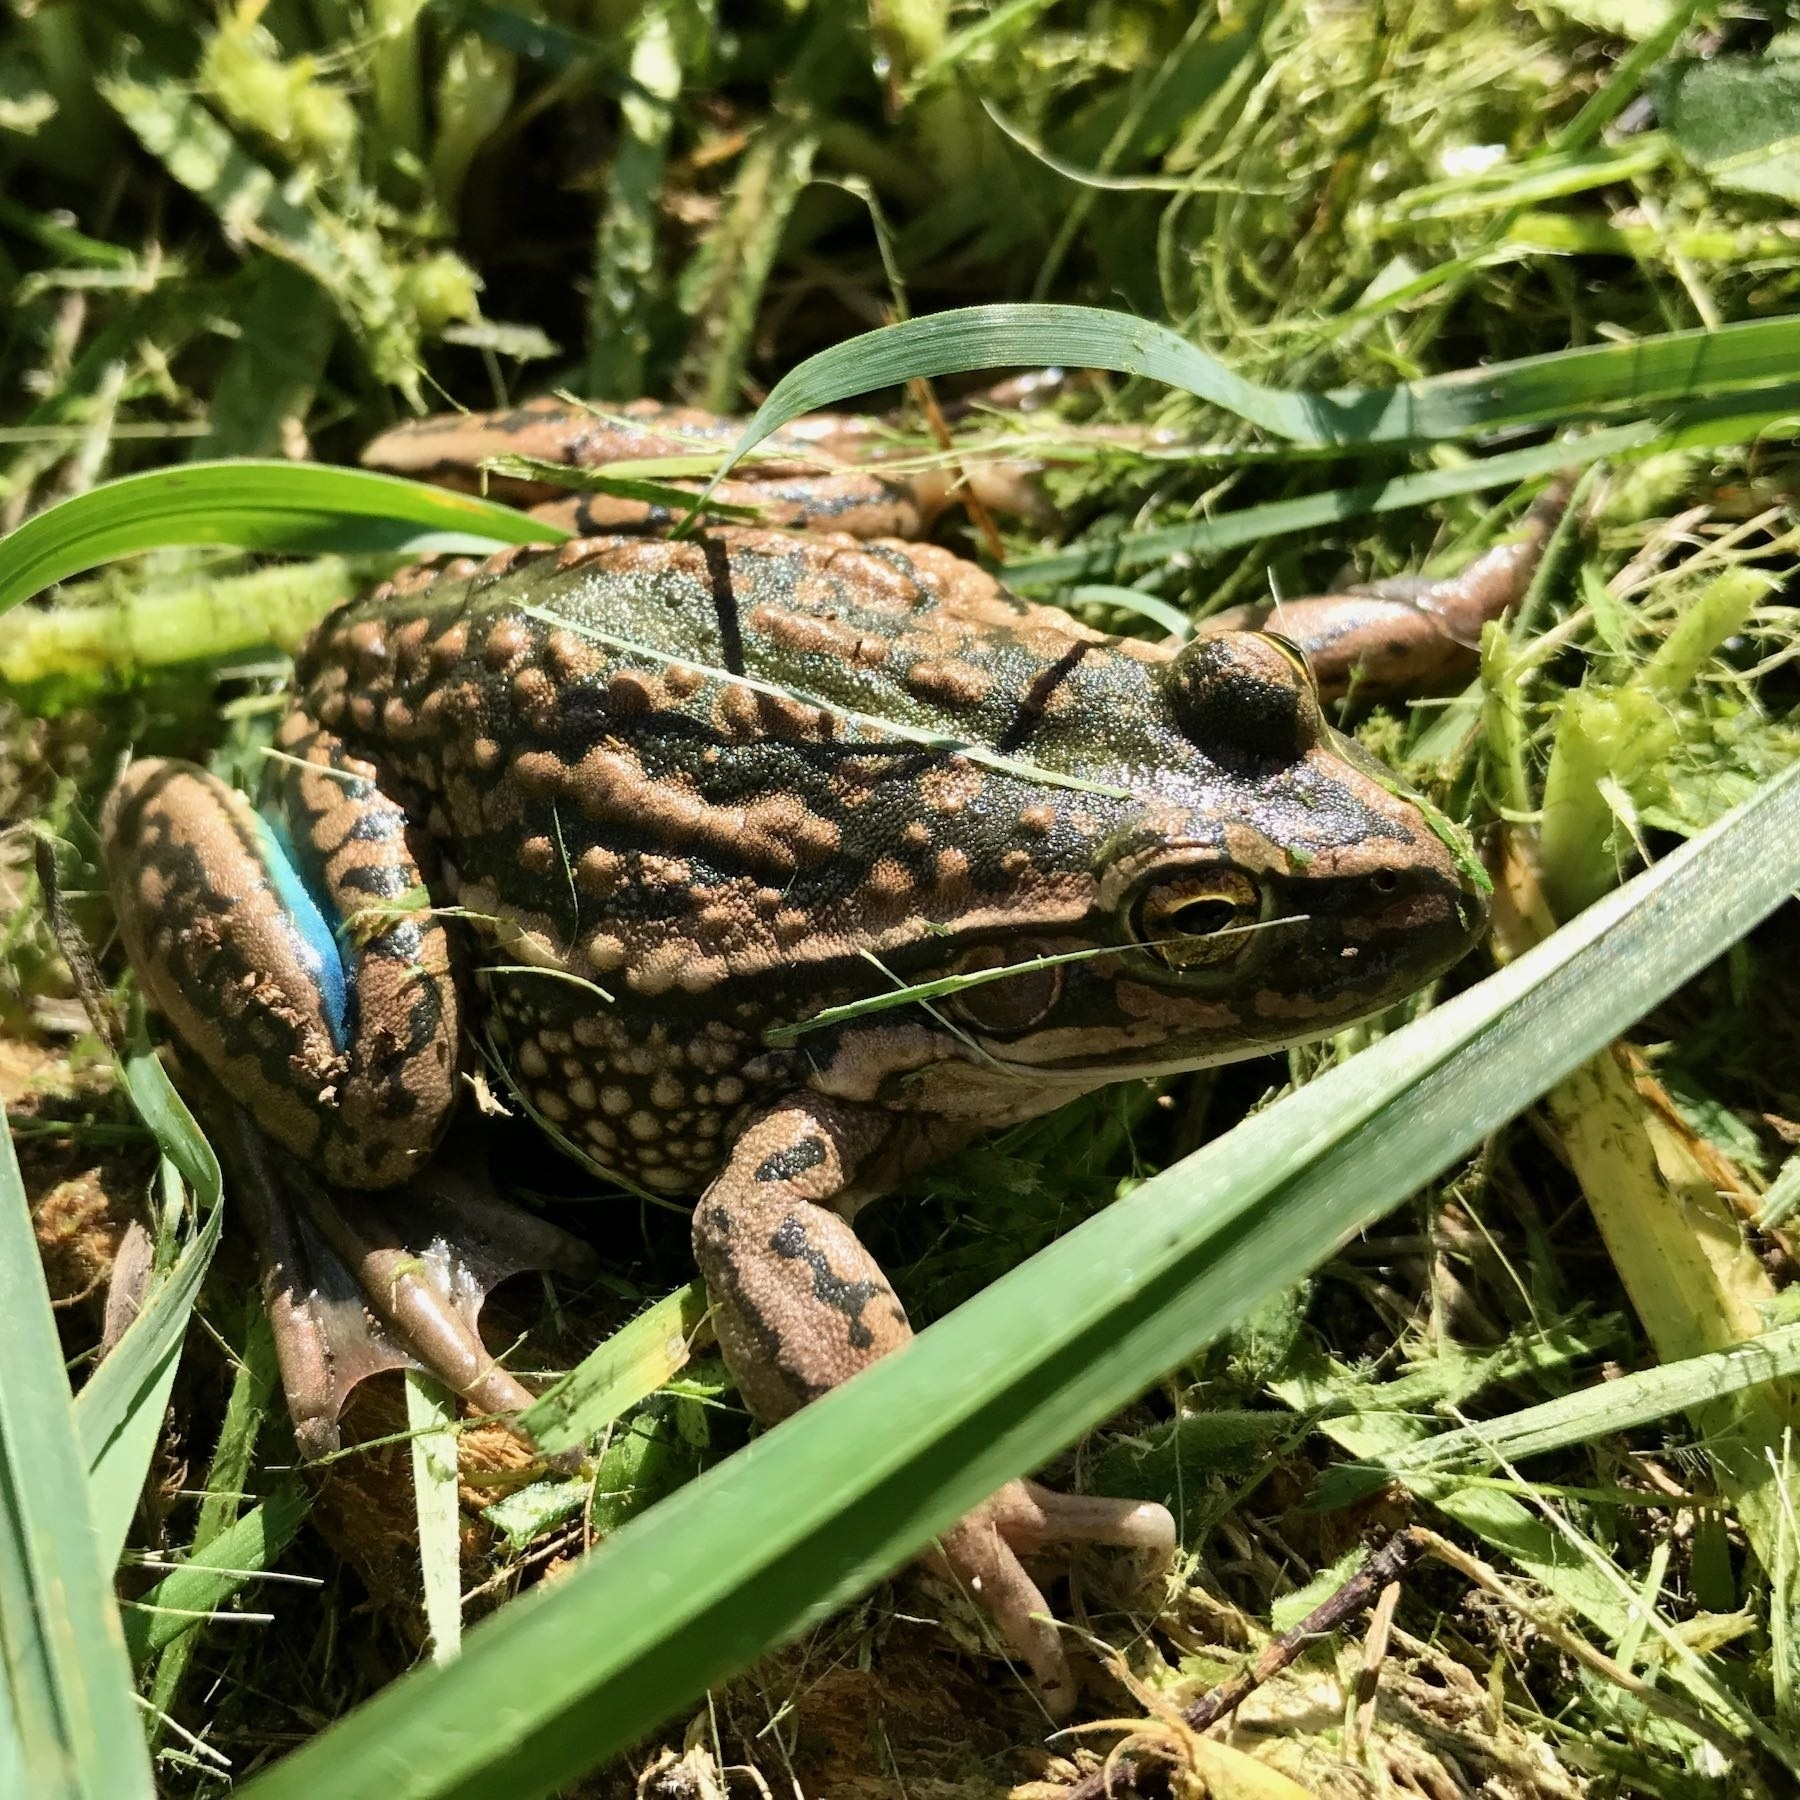 Frog in grass.